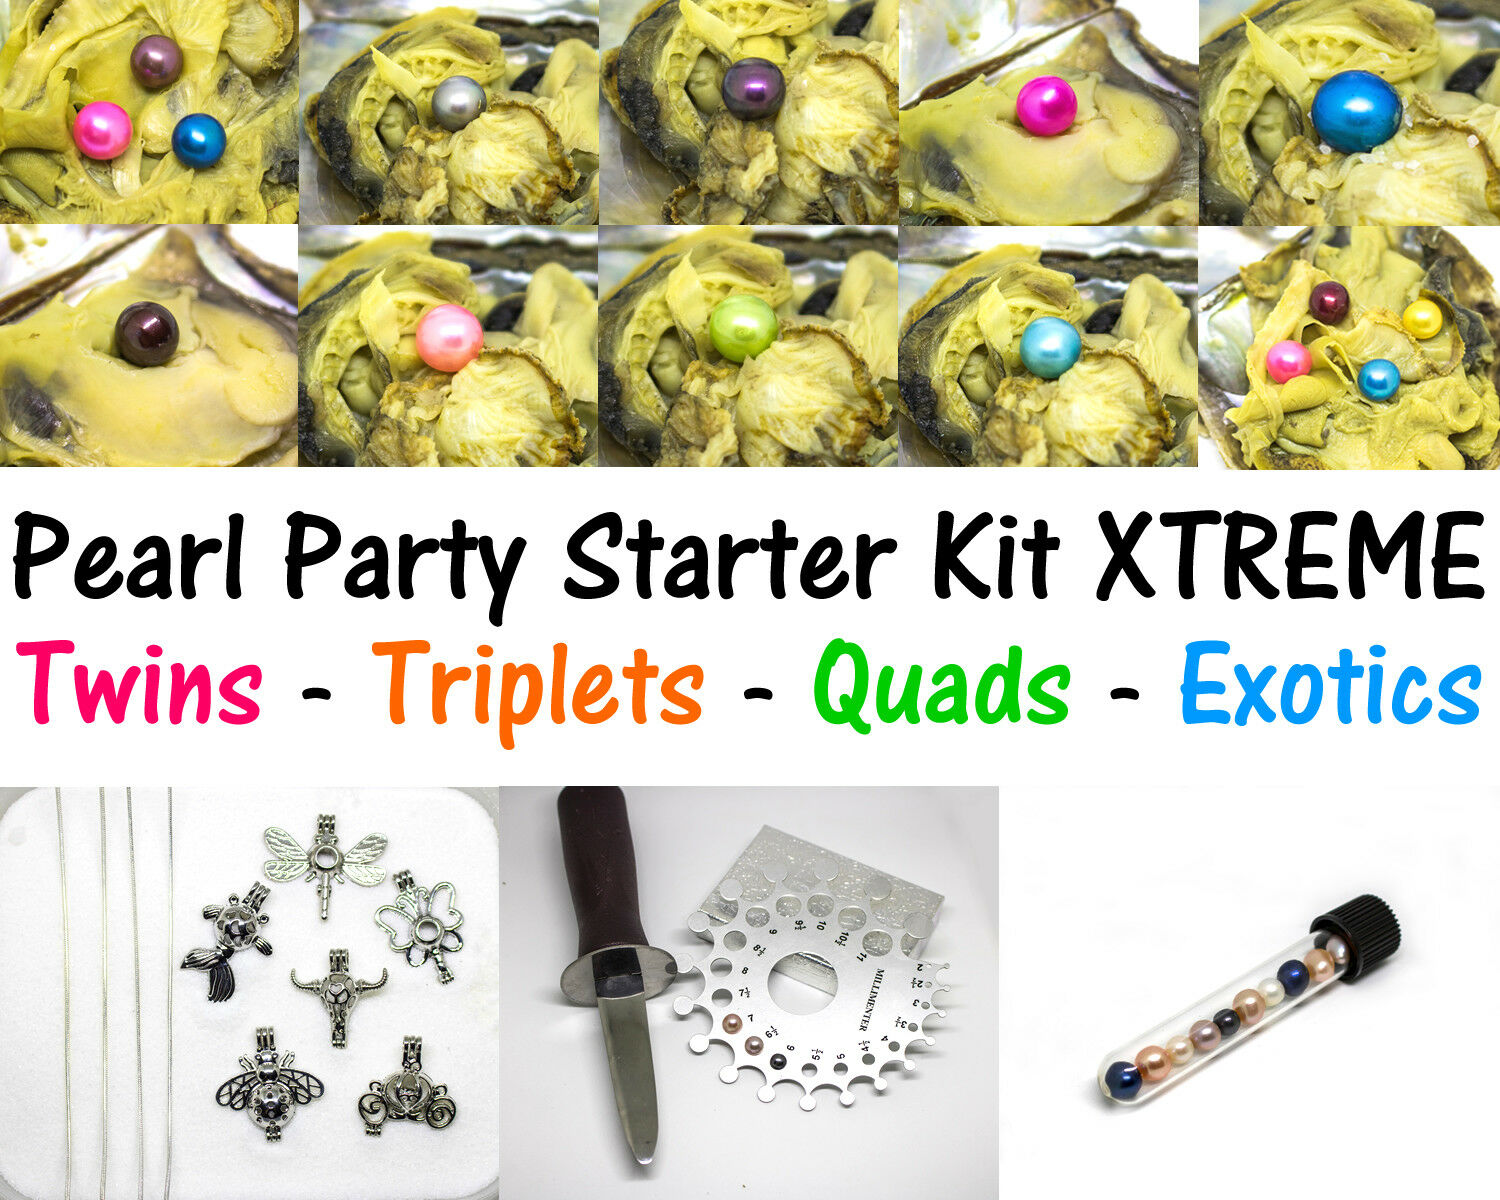 30 Akoya Oysters BULK - Party Party XTREME Kit - Quads, Triplets & Pearl Cages